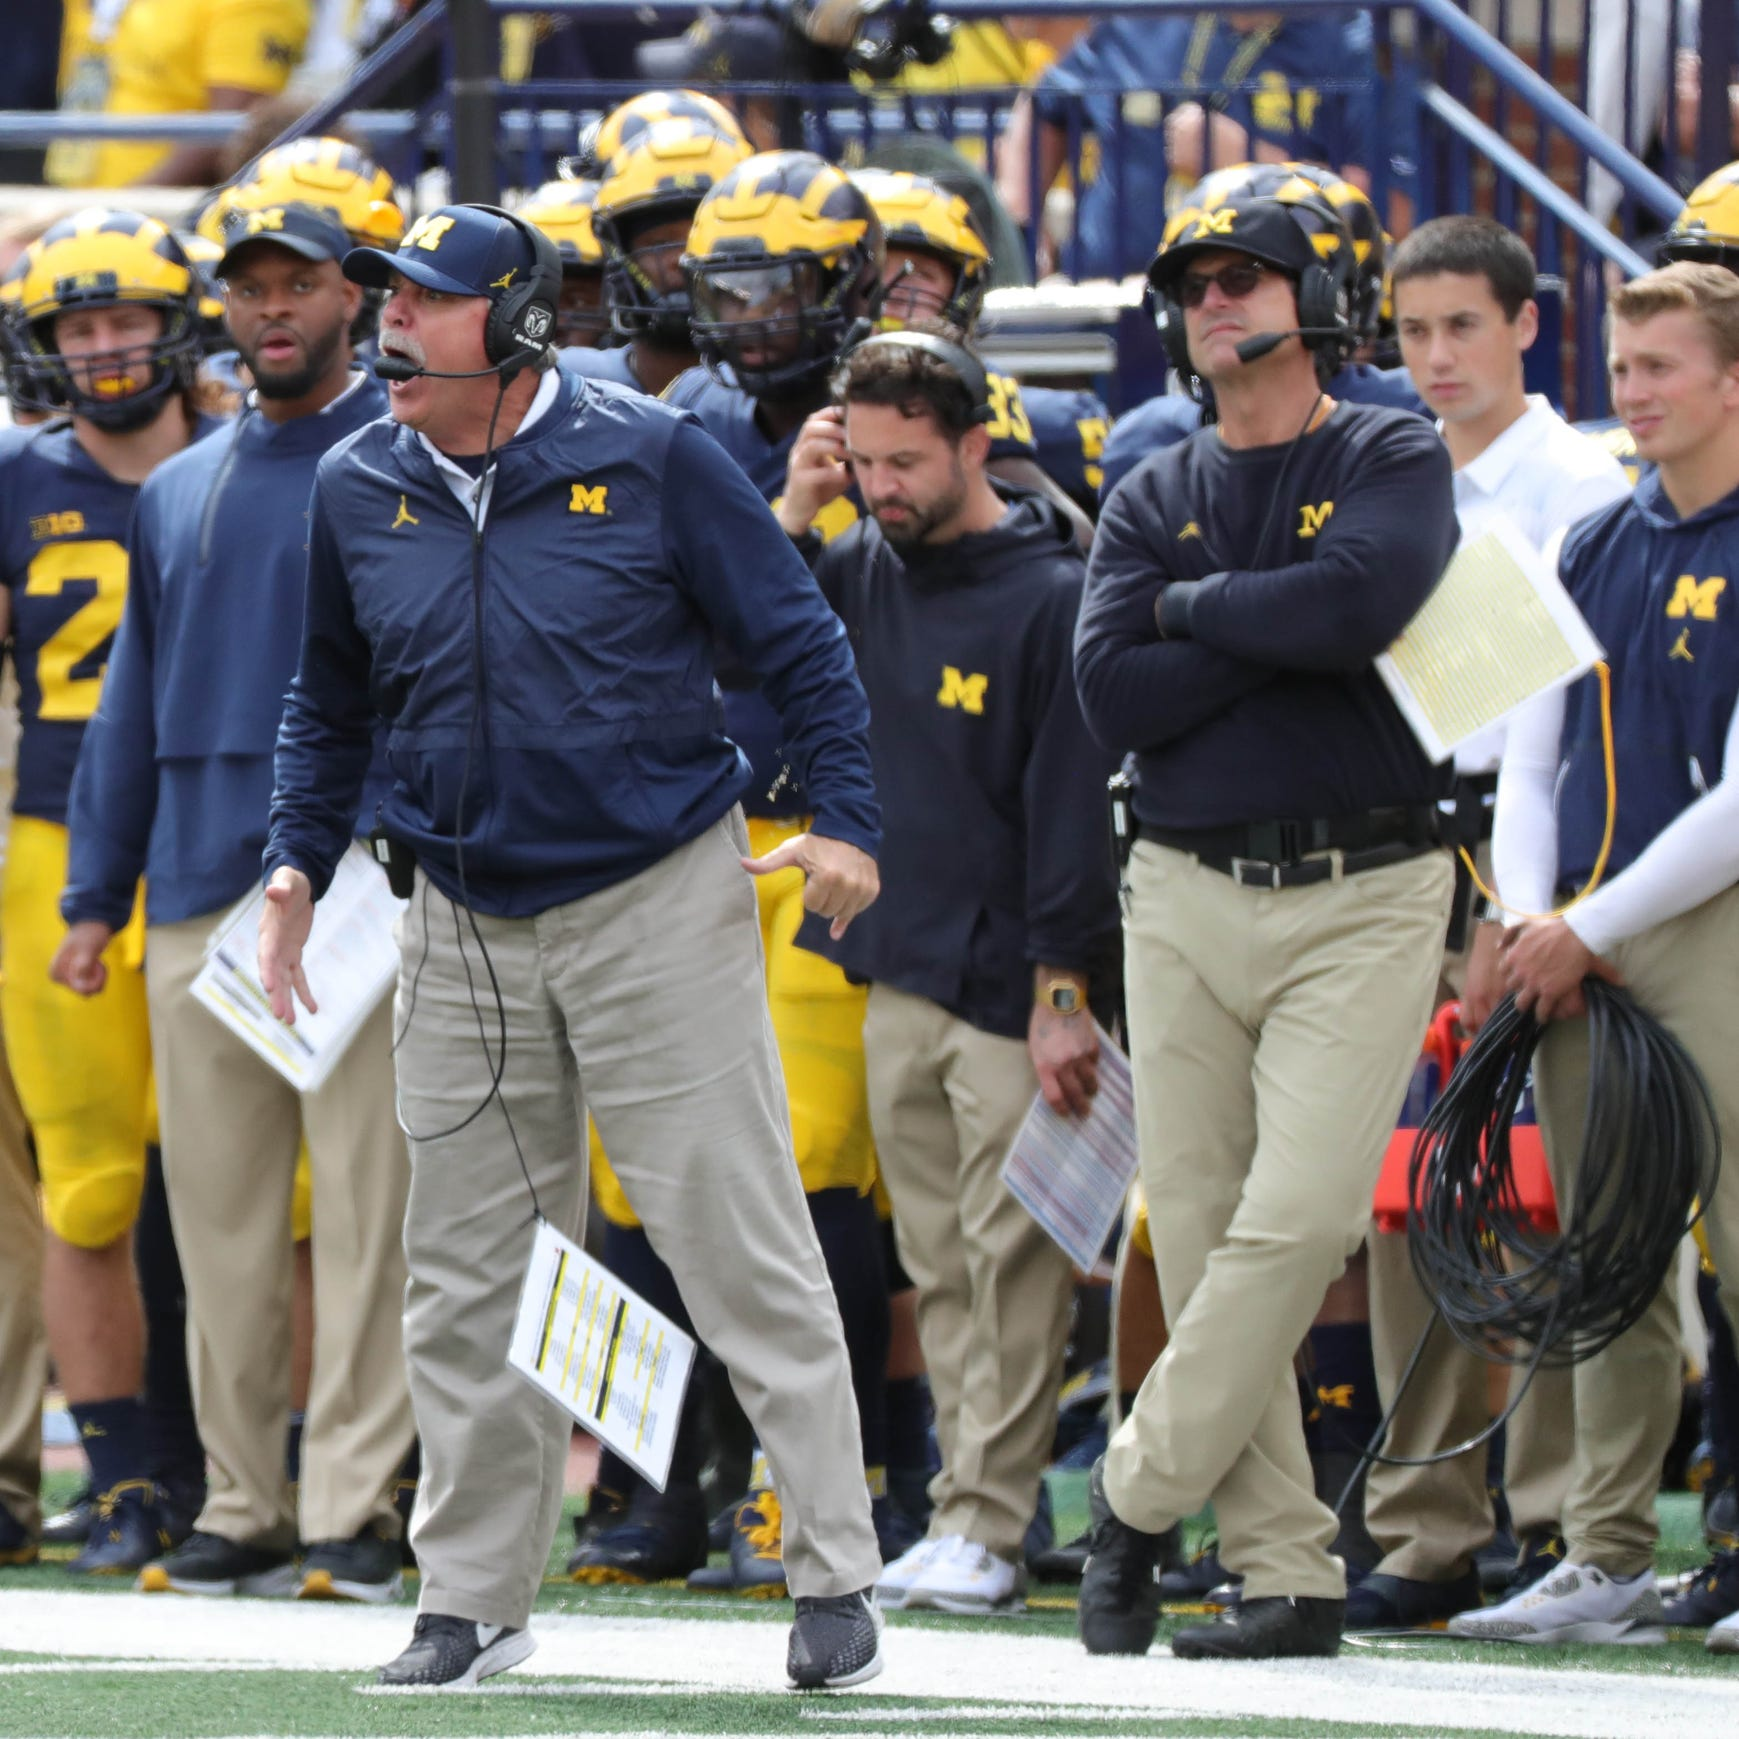 Michigan defensive coordinator Don Brown, left, and head coach Jim Harbaugh on the sideline against Nebraska on Saturday, Sept. 22, 2018 at Michigan Stadium in Ann Arbor.